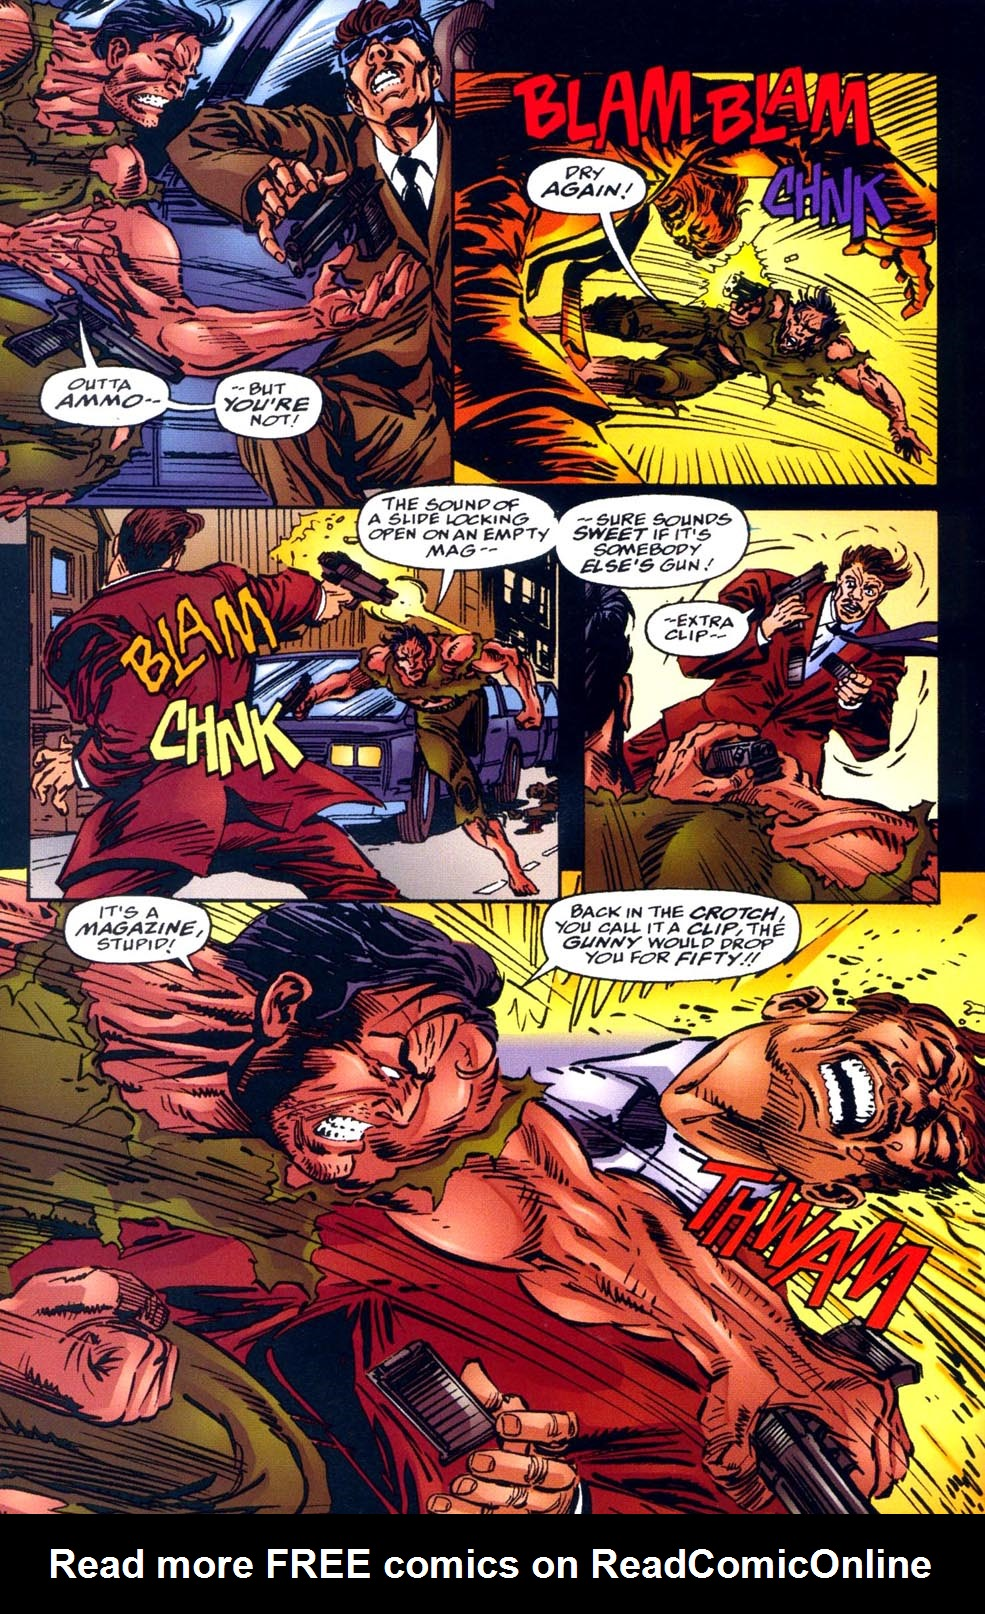 Read online Double Edge comic -  Issue # Issue Alpha - 32